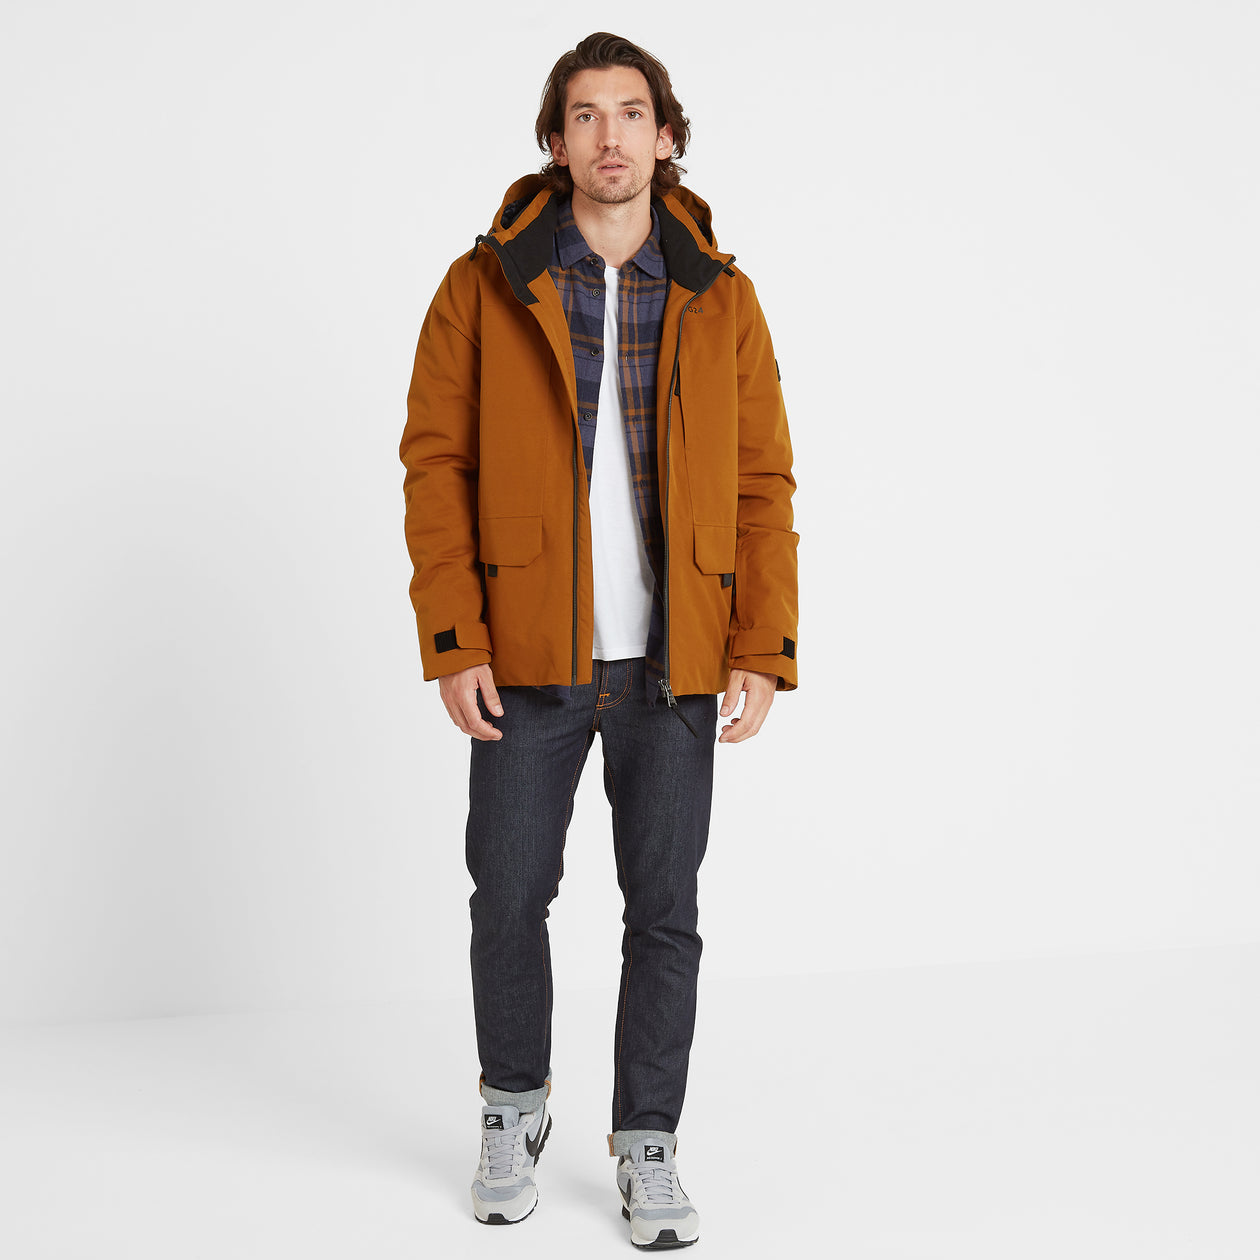 Helmsley Mens Winter Jacket - Amber image 4